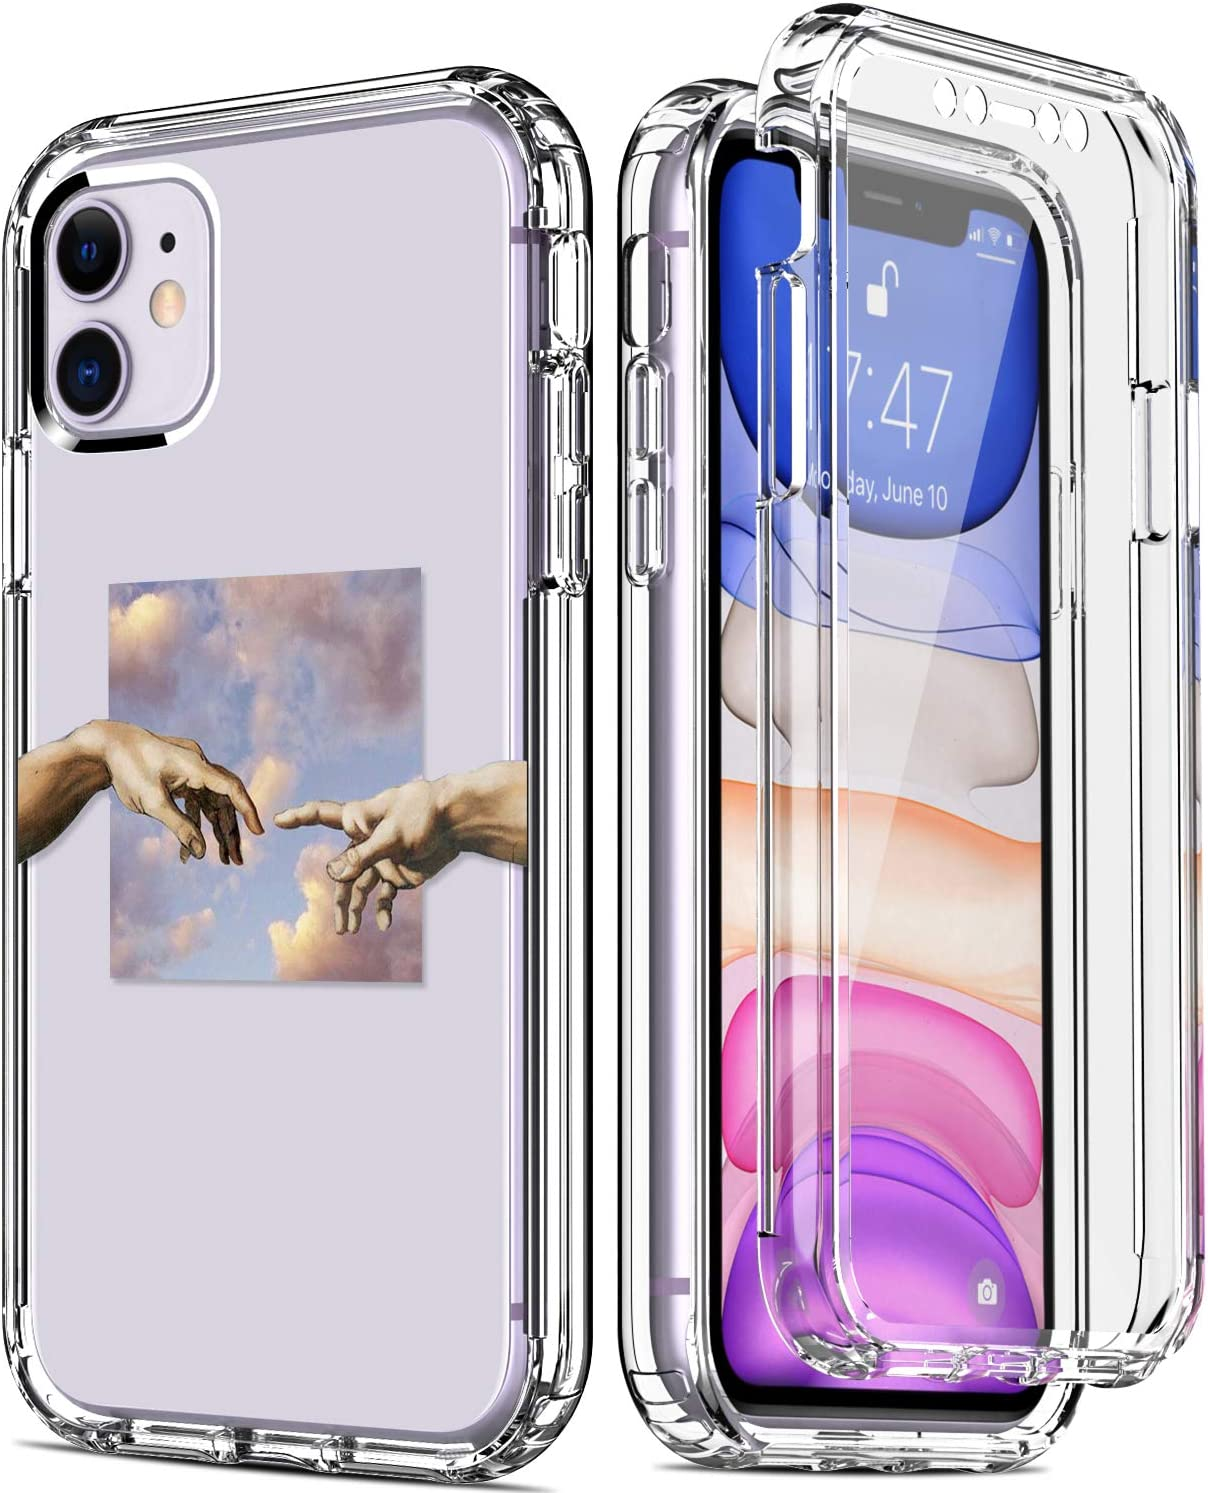 """IKAZZ iPhone 11 Case with Built-in Screen Protector,Clear TPU Bumper Cover with Fashionable Floral Designs for Girls Women,Protective Phone Case for Apple iPhone 11 6.1"""" Hunger for Your Touch"""